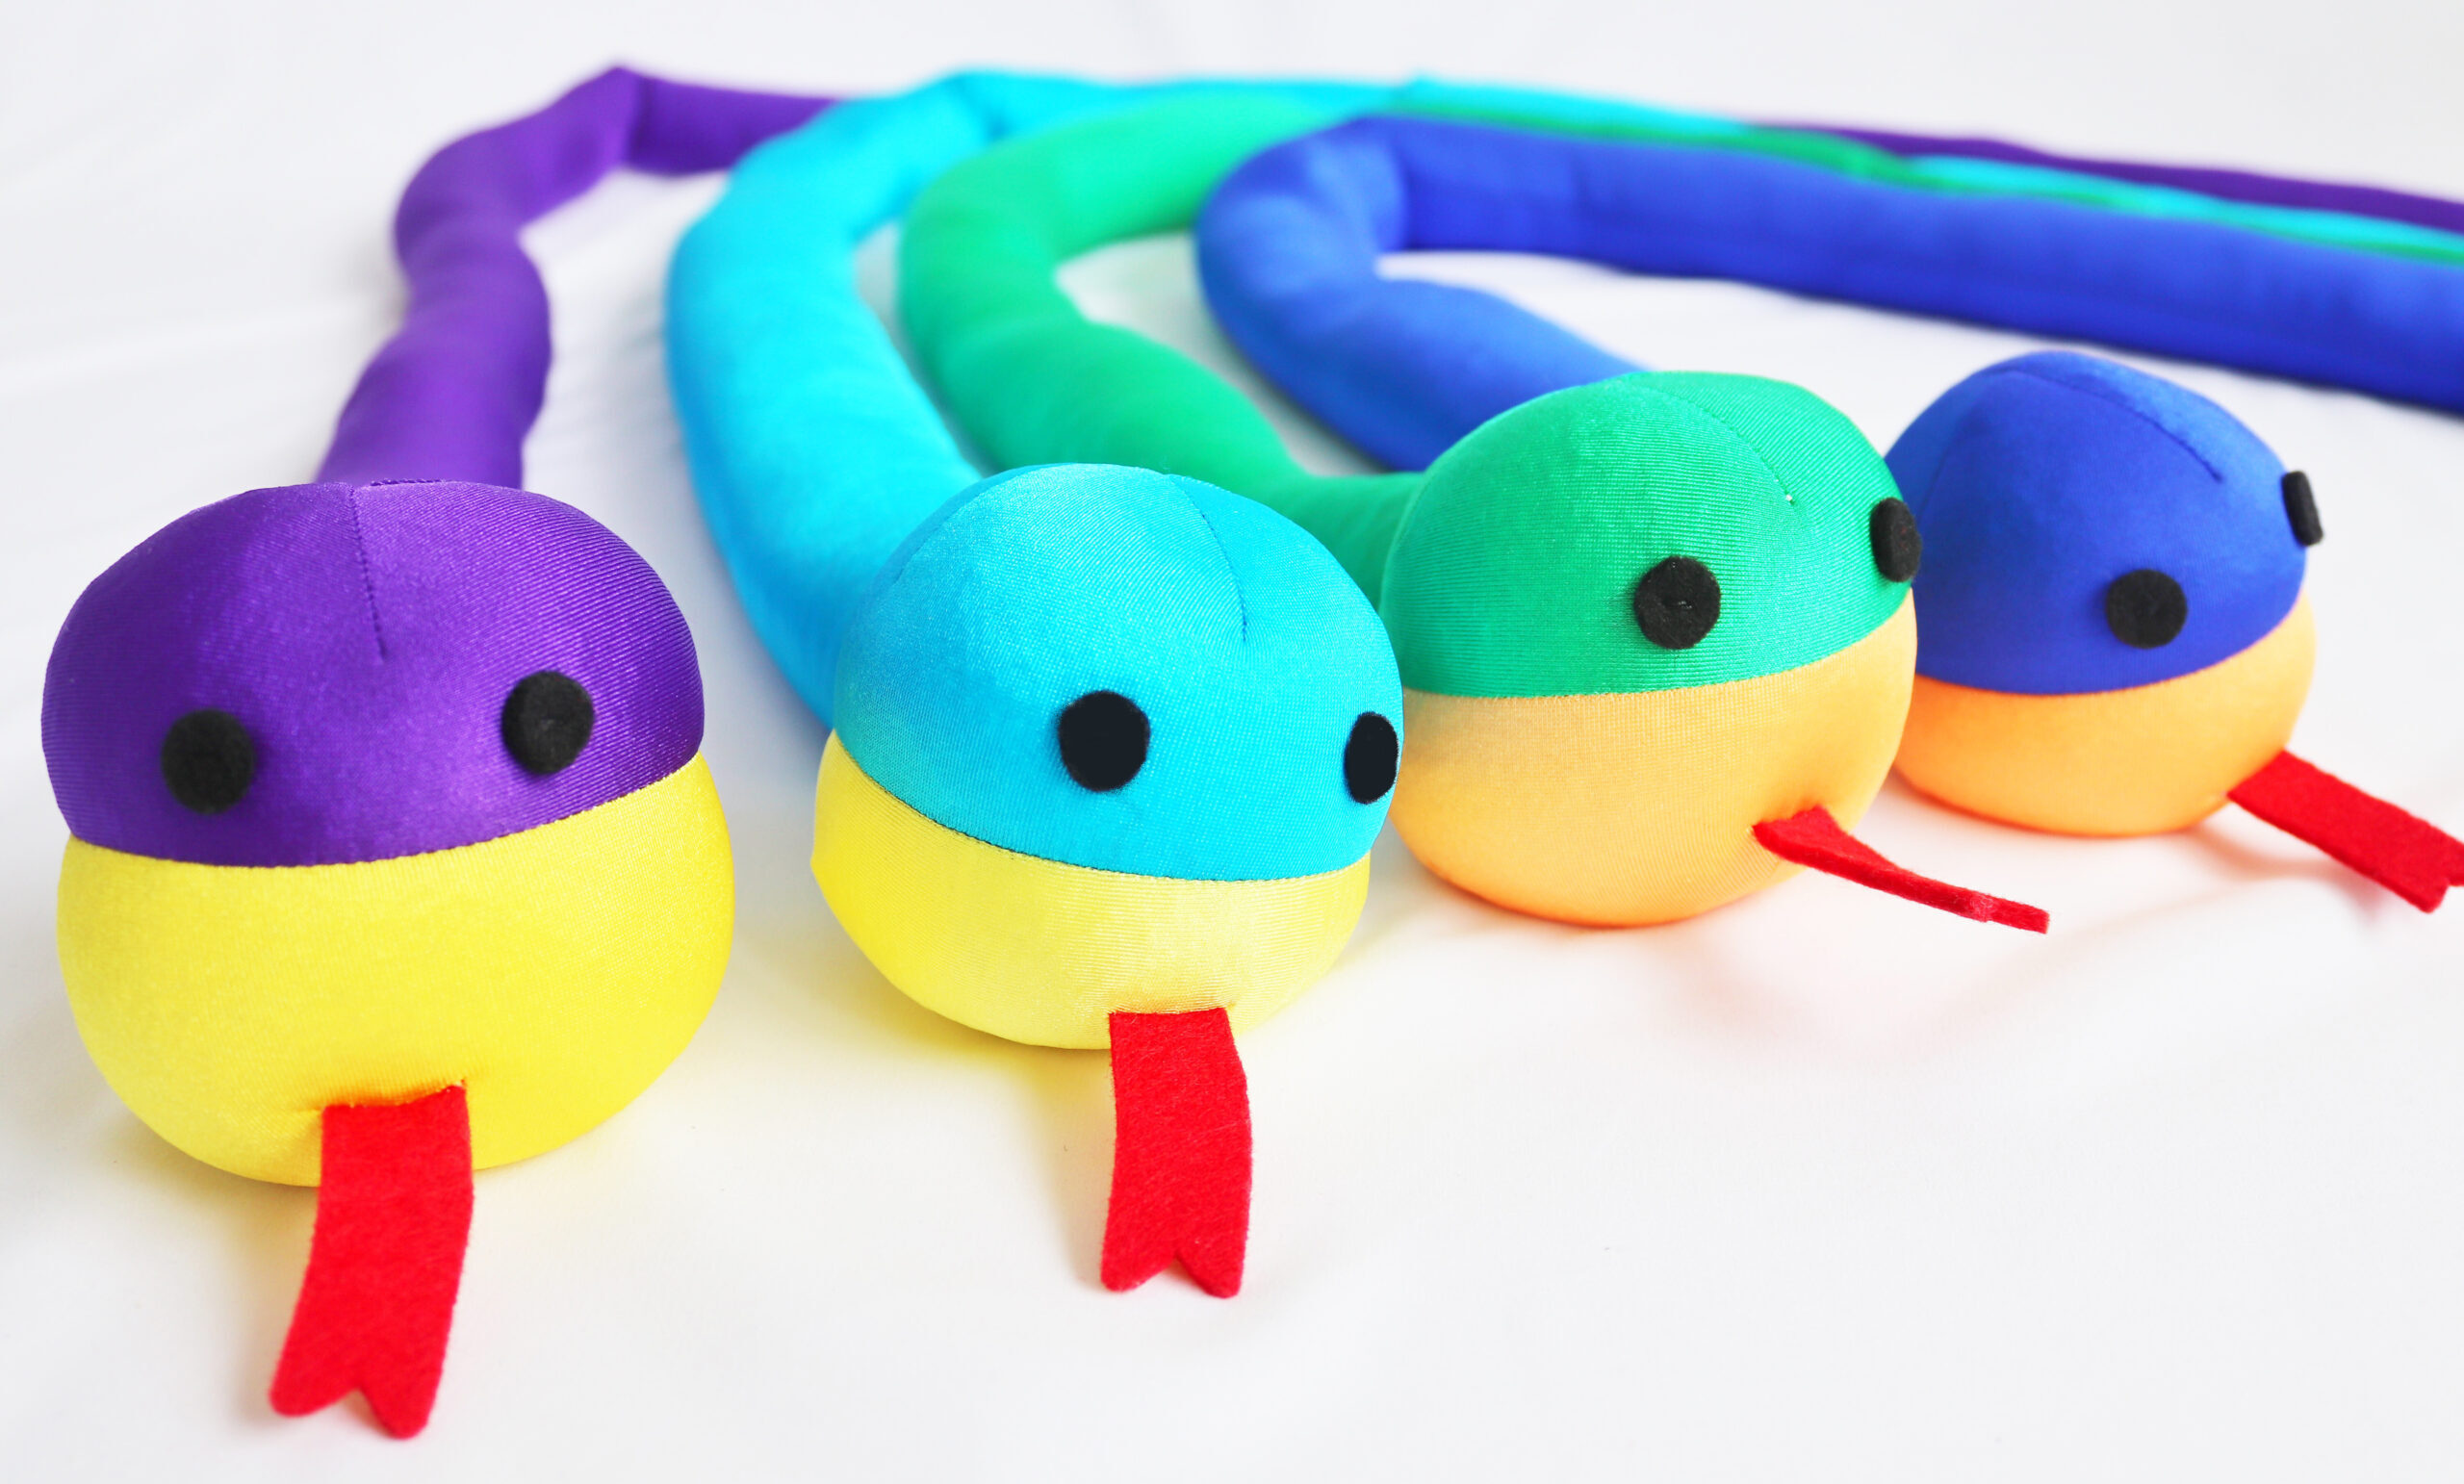 Colourful toy snakes